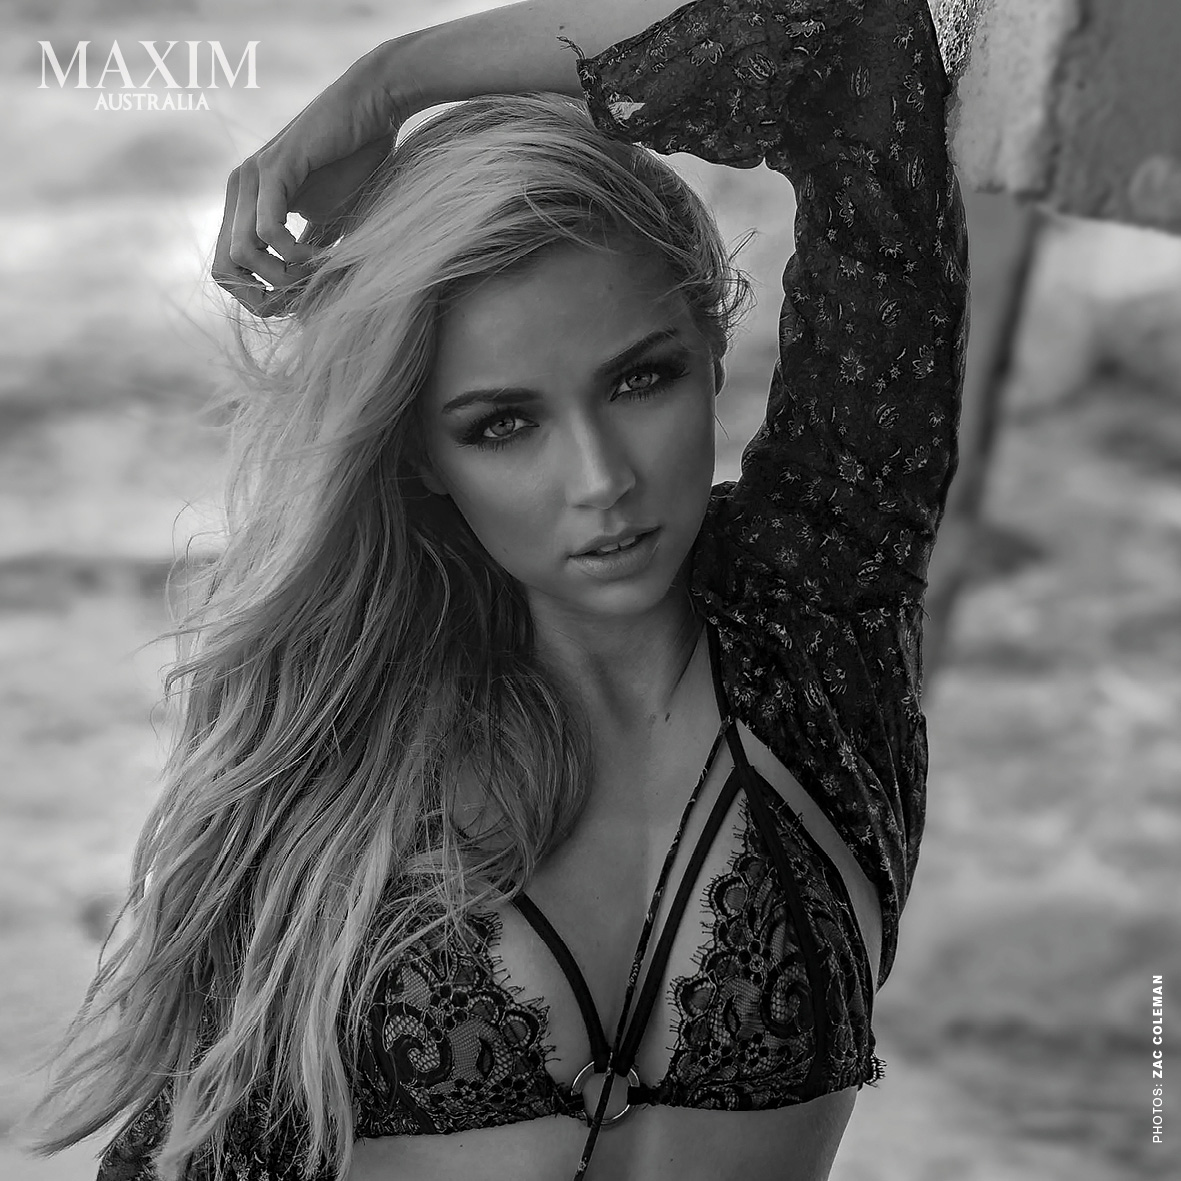 Maxim-New-Zealand-Alison-Bowles-3